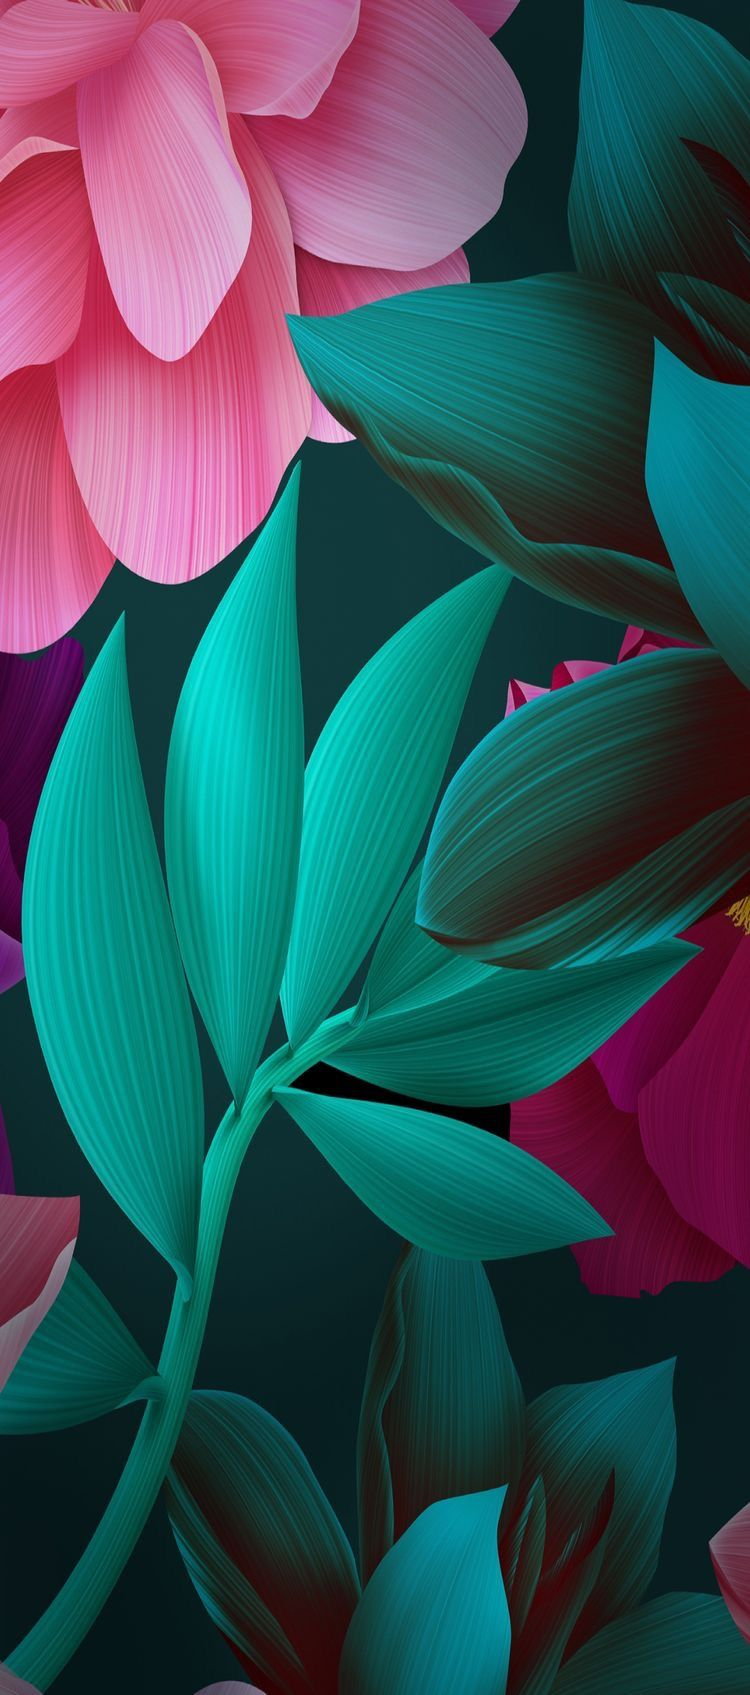 Love Plant wallpaper, Unique iphone wallpaper, Summer